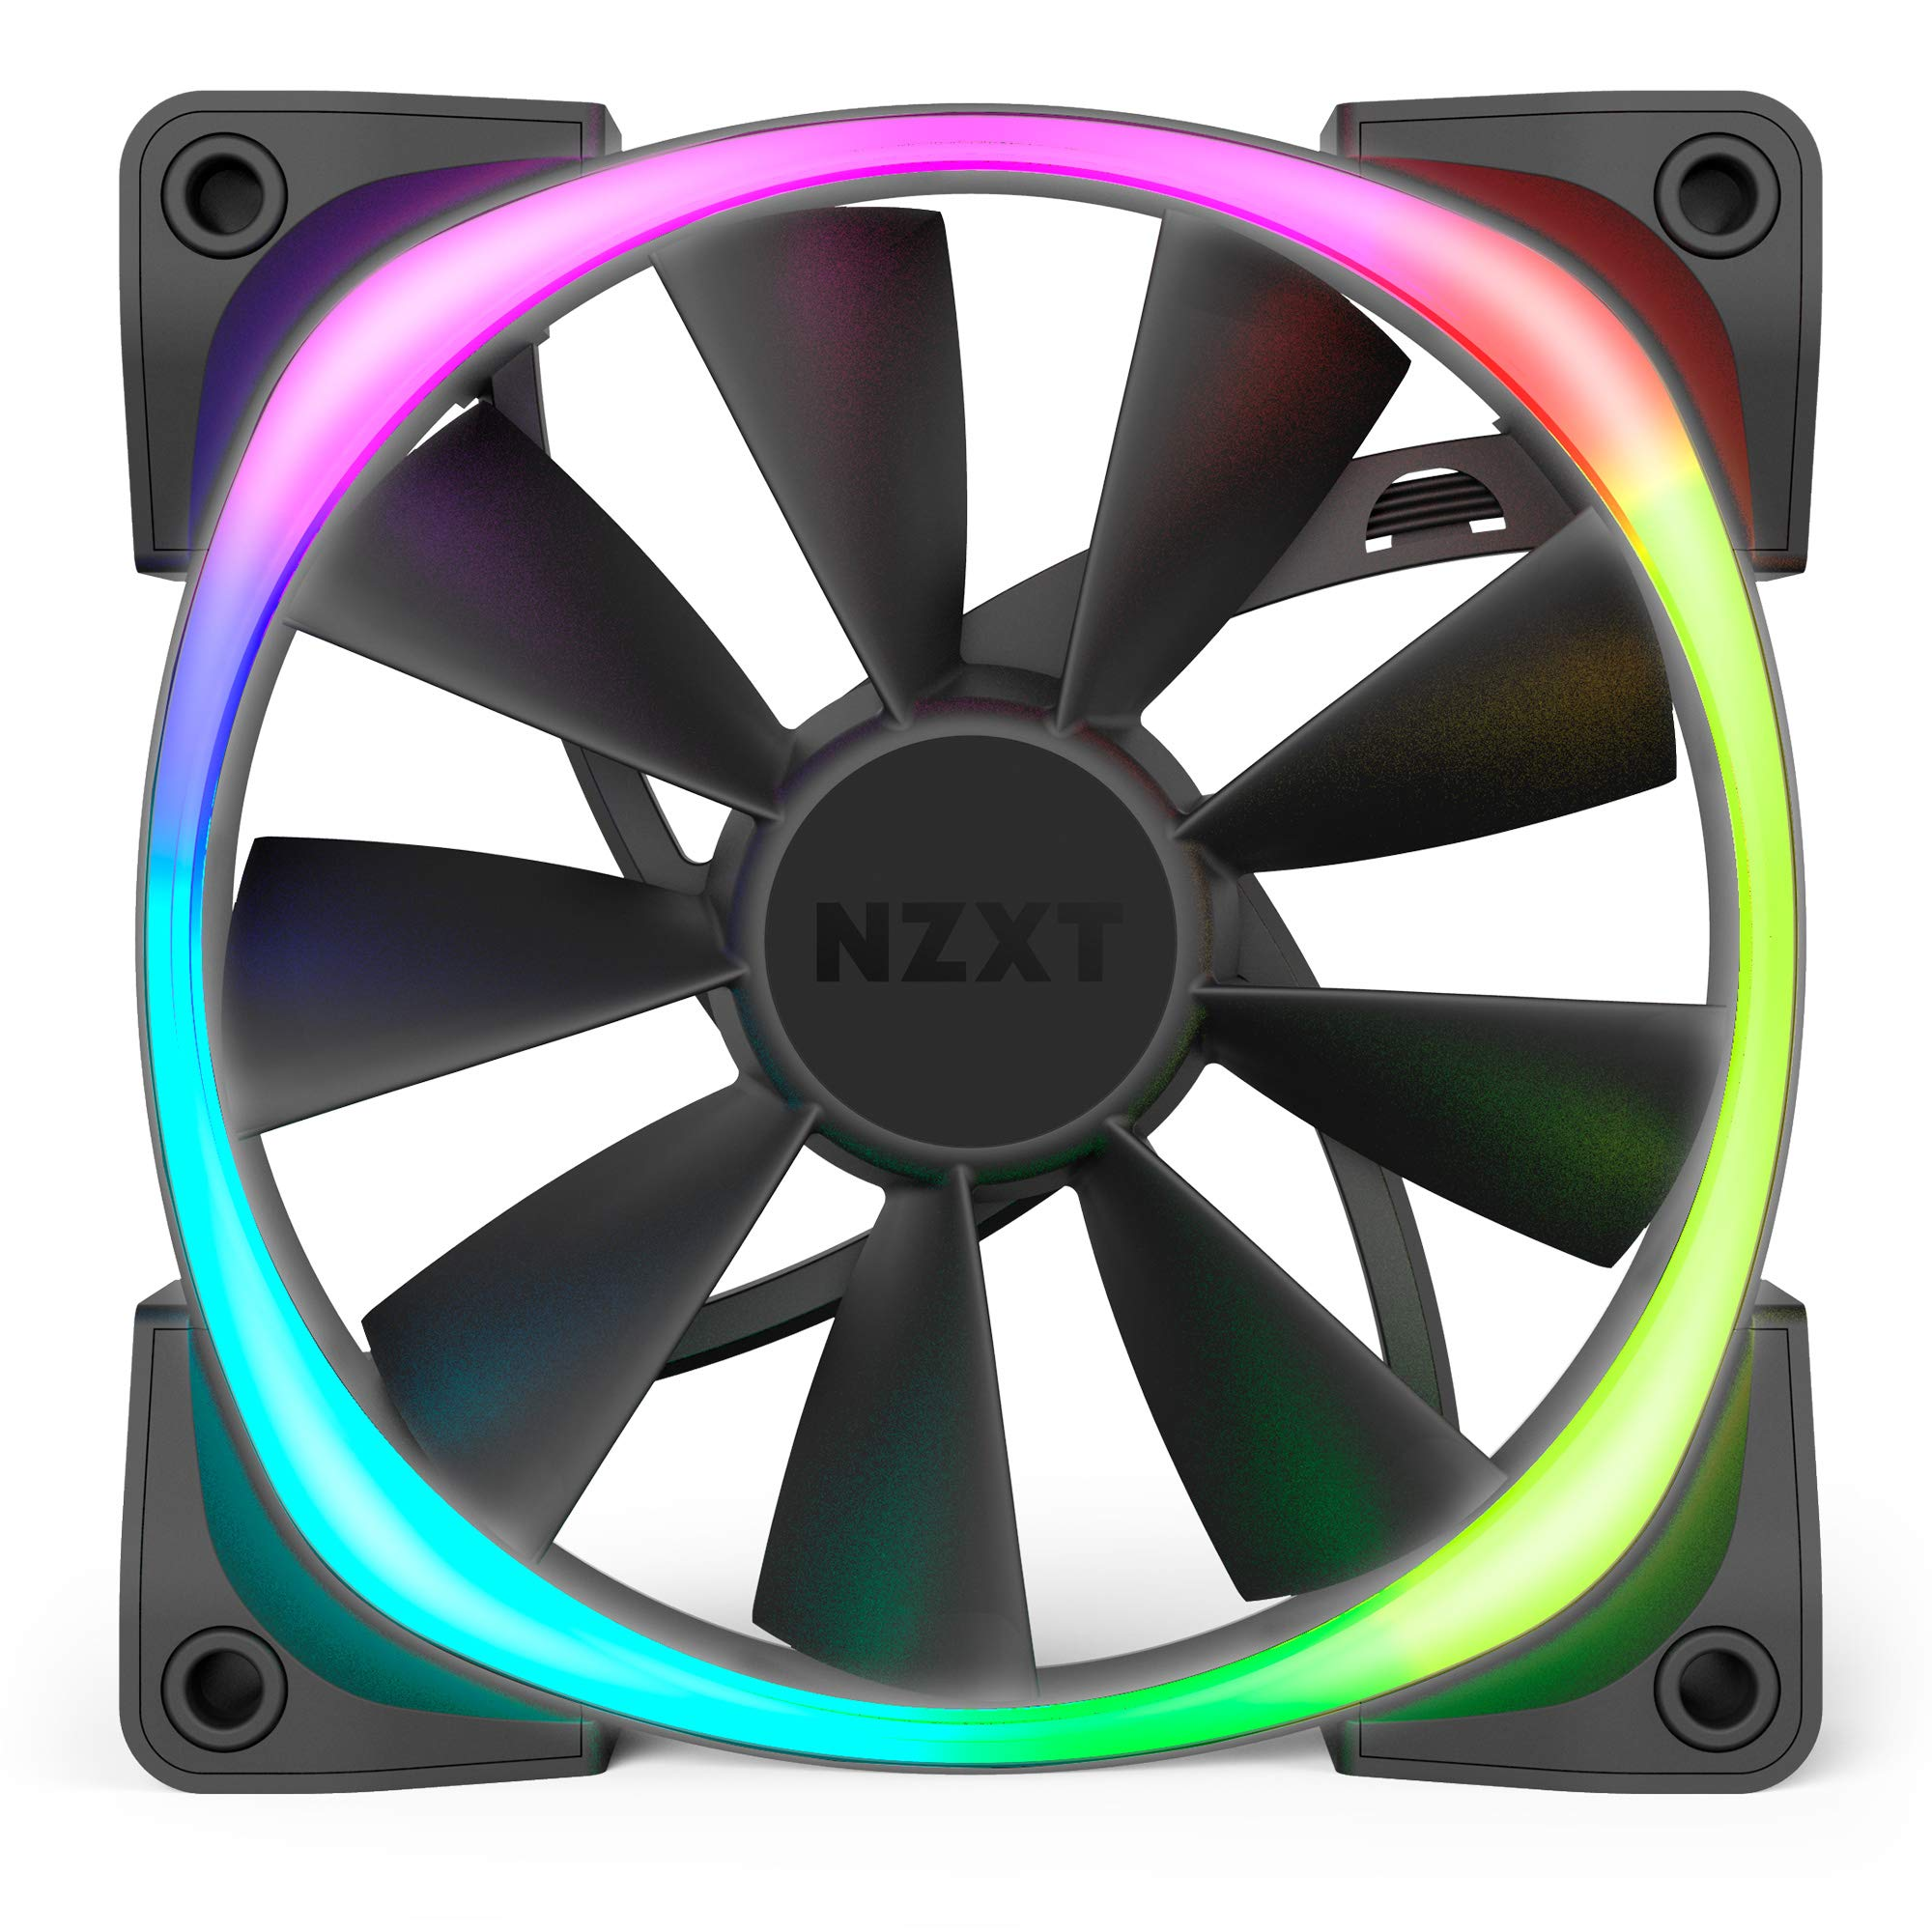 NZXT AER RGB 2 - 3-Pack of 120mm RGB PWM Fans with Hue 2 Lighting Controller - Advanced Lighting Customizations - LED RGB PWM Fans - Winglet Tips - Fluid Dynamic Bearing -  PC Case Fan by NZXT (Image #2)